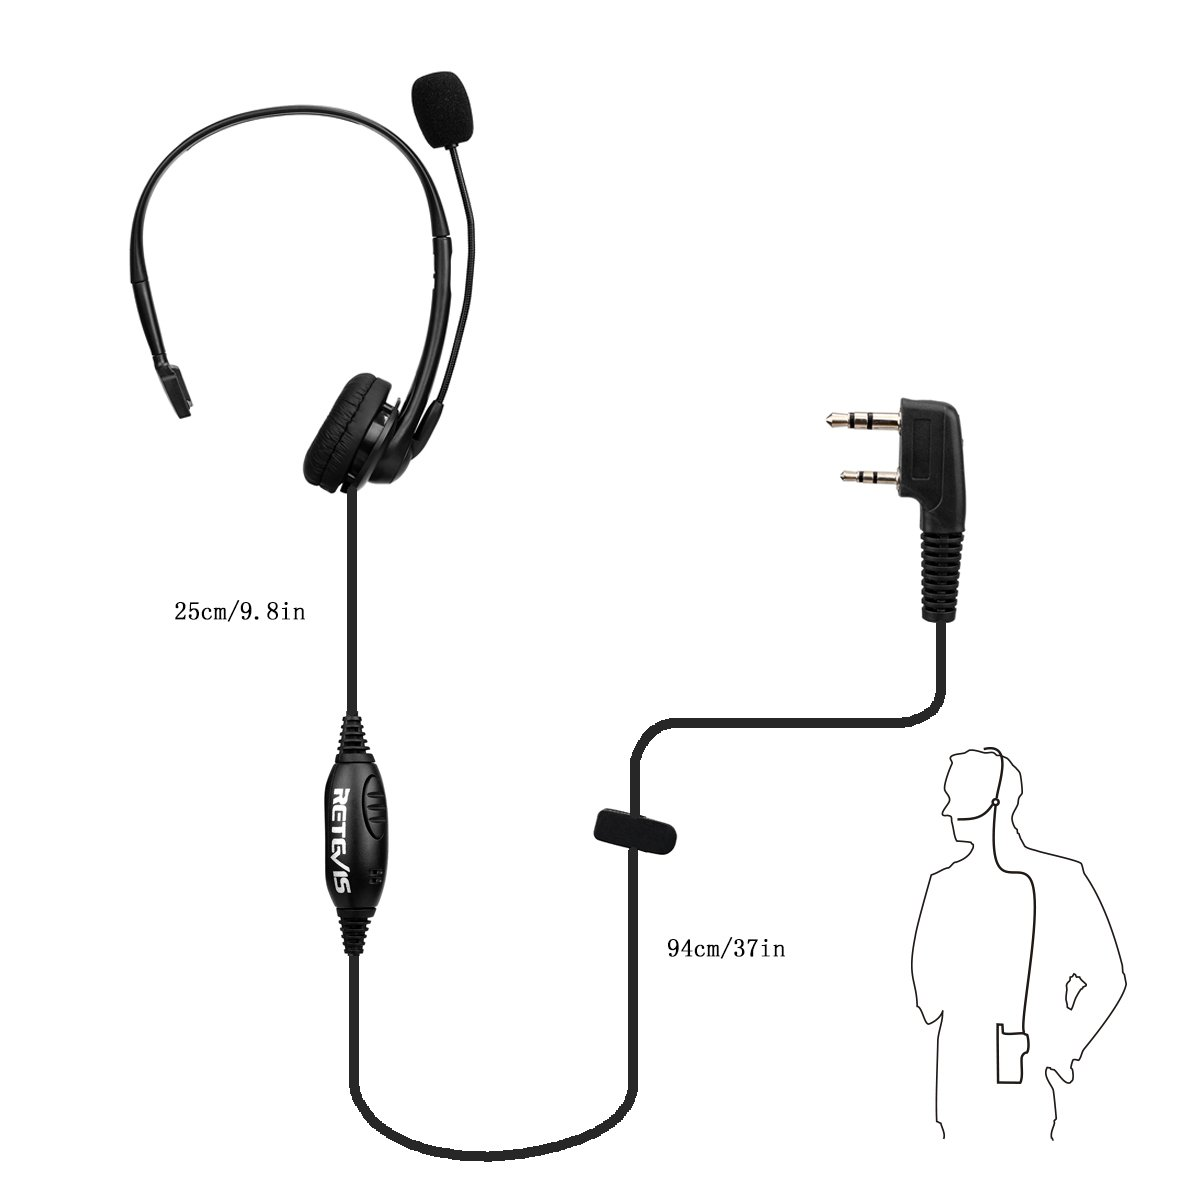 Retevis Walkie Talkie Earpiece Headset with Mic Noise Cancelling Headphone Overhead Headset for Kenwood H-777 RT21 RT22 RT27 H-777S Baofeng UV-5R BF-888s 2 Way Radio (1 Pack) by Retevis (Image #4)